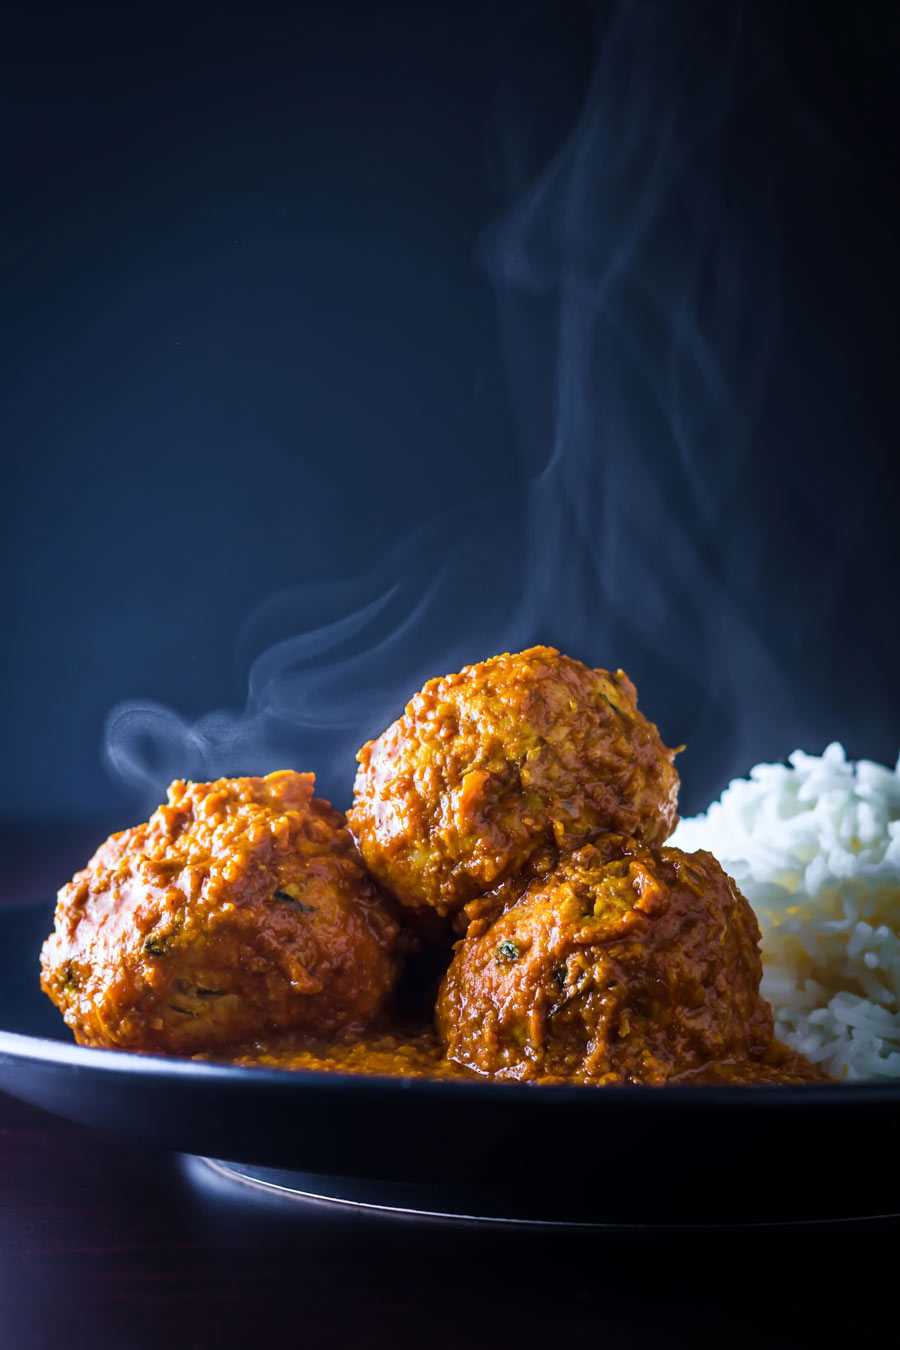 Chicken Kofta Masala, soft Indian chicken meatballs poached in a hot and spicy yet aromatic Indian gravy, fakeaway heaven.